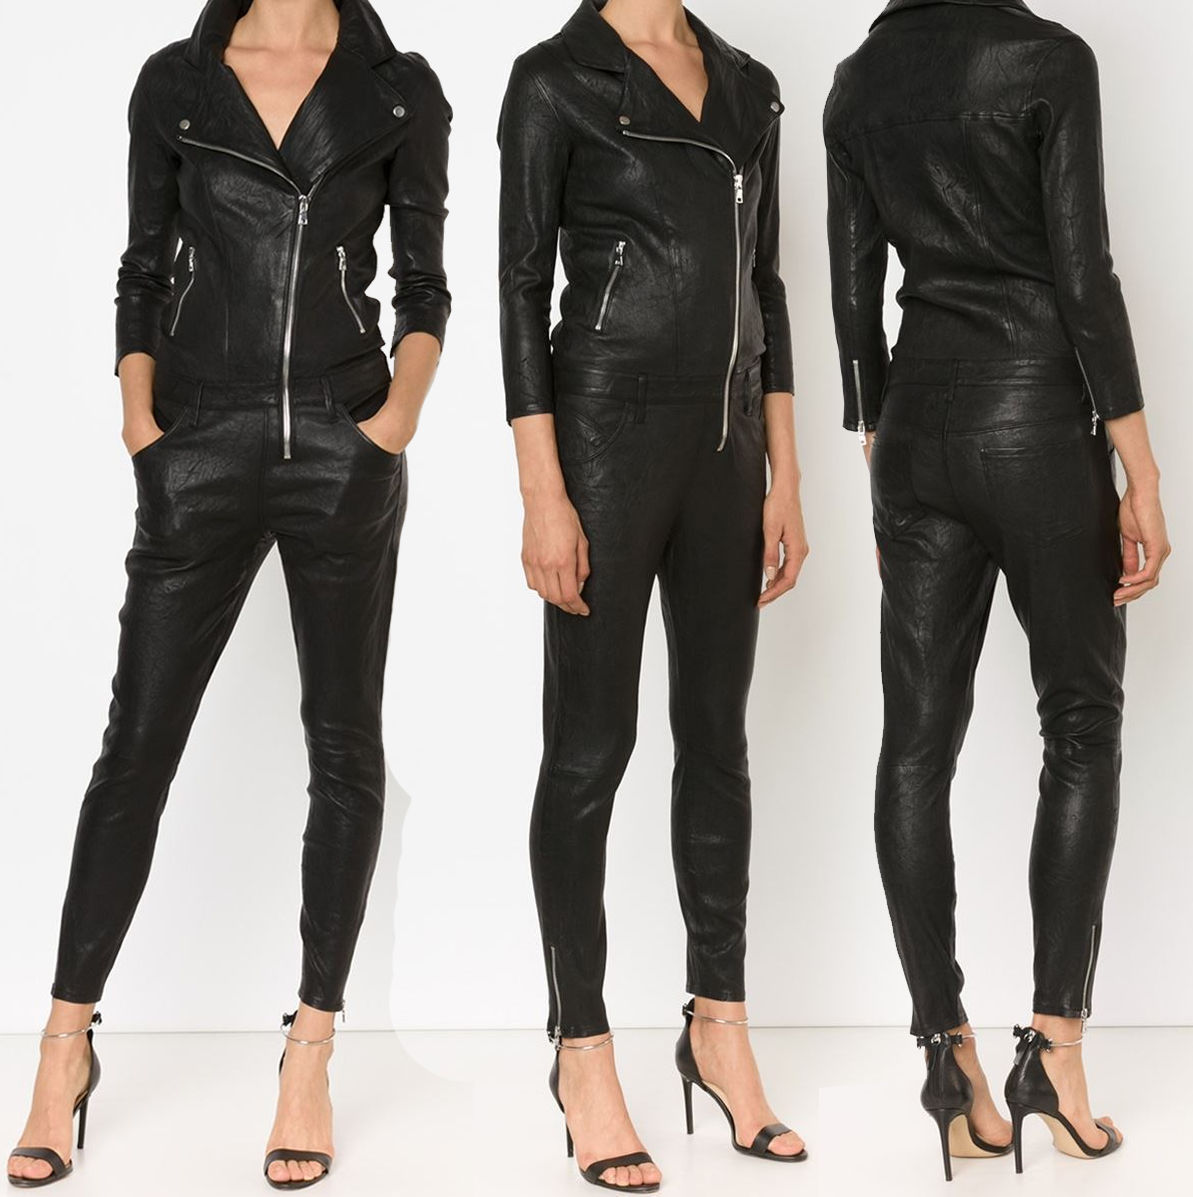 WOMEN LEATHER JUMPSUIT ROMPERS GENUINE LAMBSKIN REAL LEATHER JUMPSUIT-01